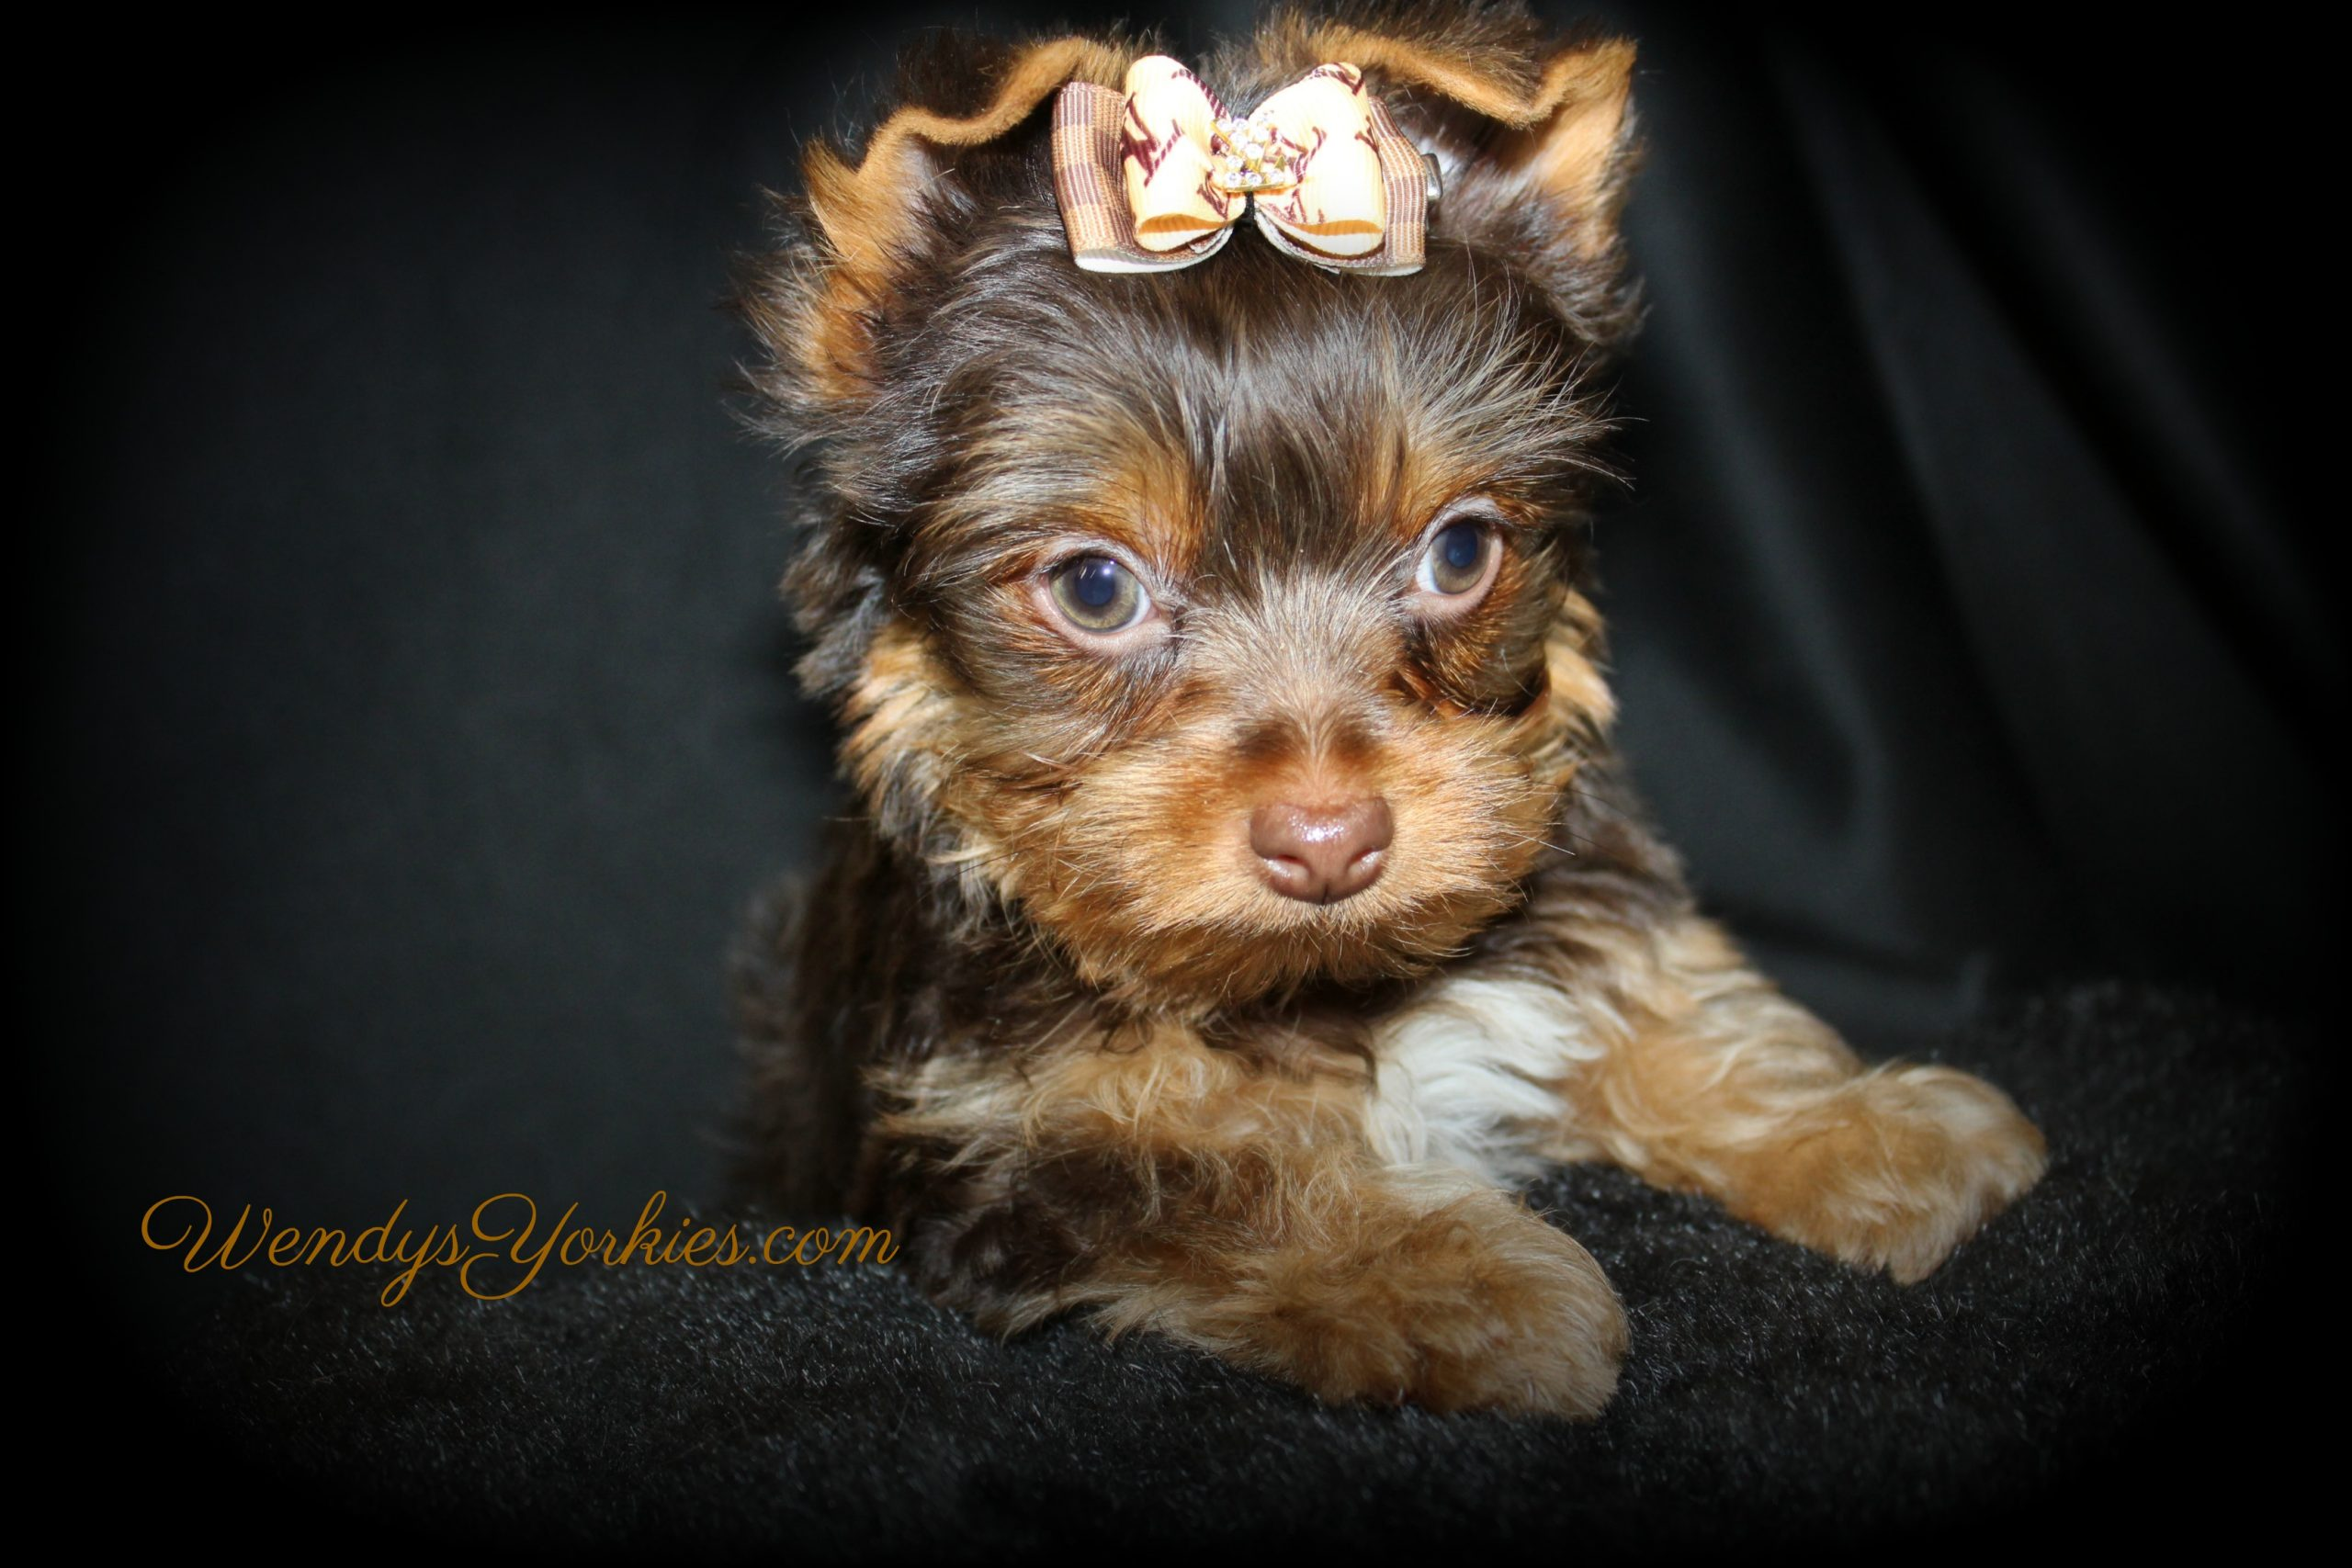 Chocolate Yorki puppies for sale in Texas, Harley cm1,WendysYorkies.com